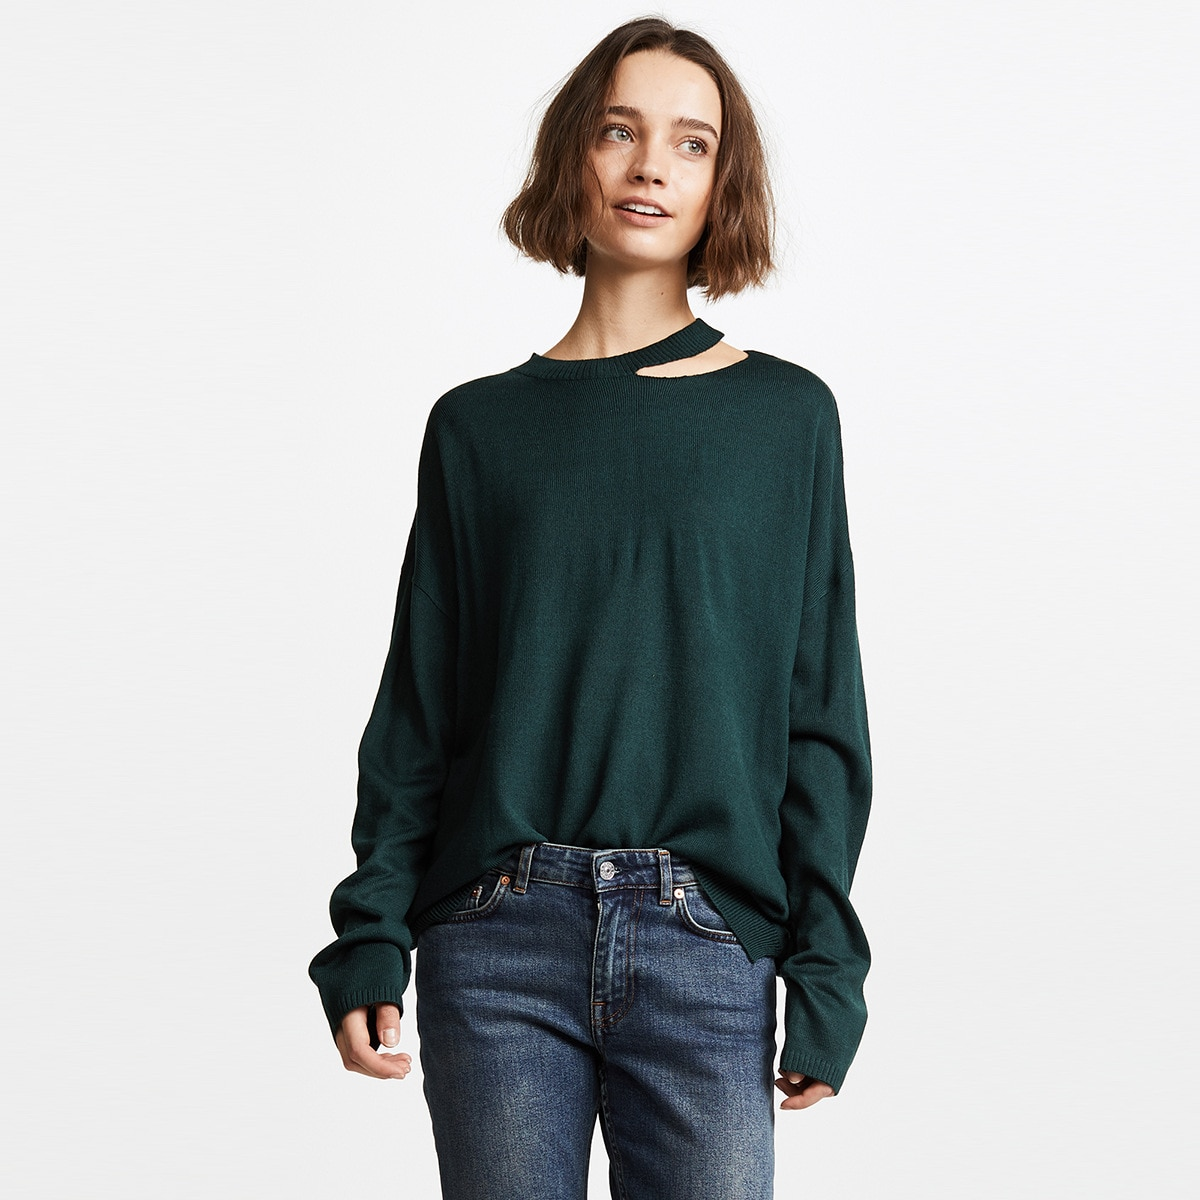 New European And American Fashion Simple Joker Solid Color Neckline Asymmetric Hollow Carefully Machine Sweater Best Selling